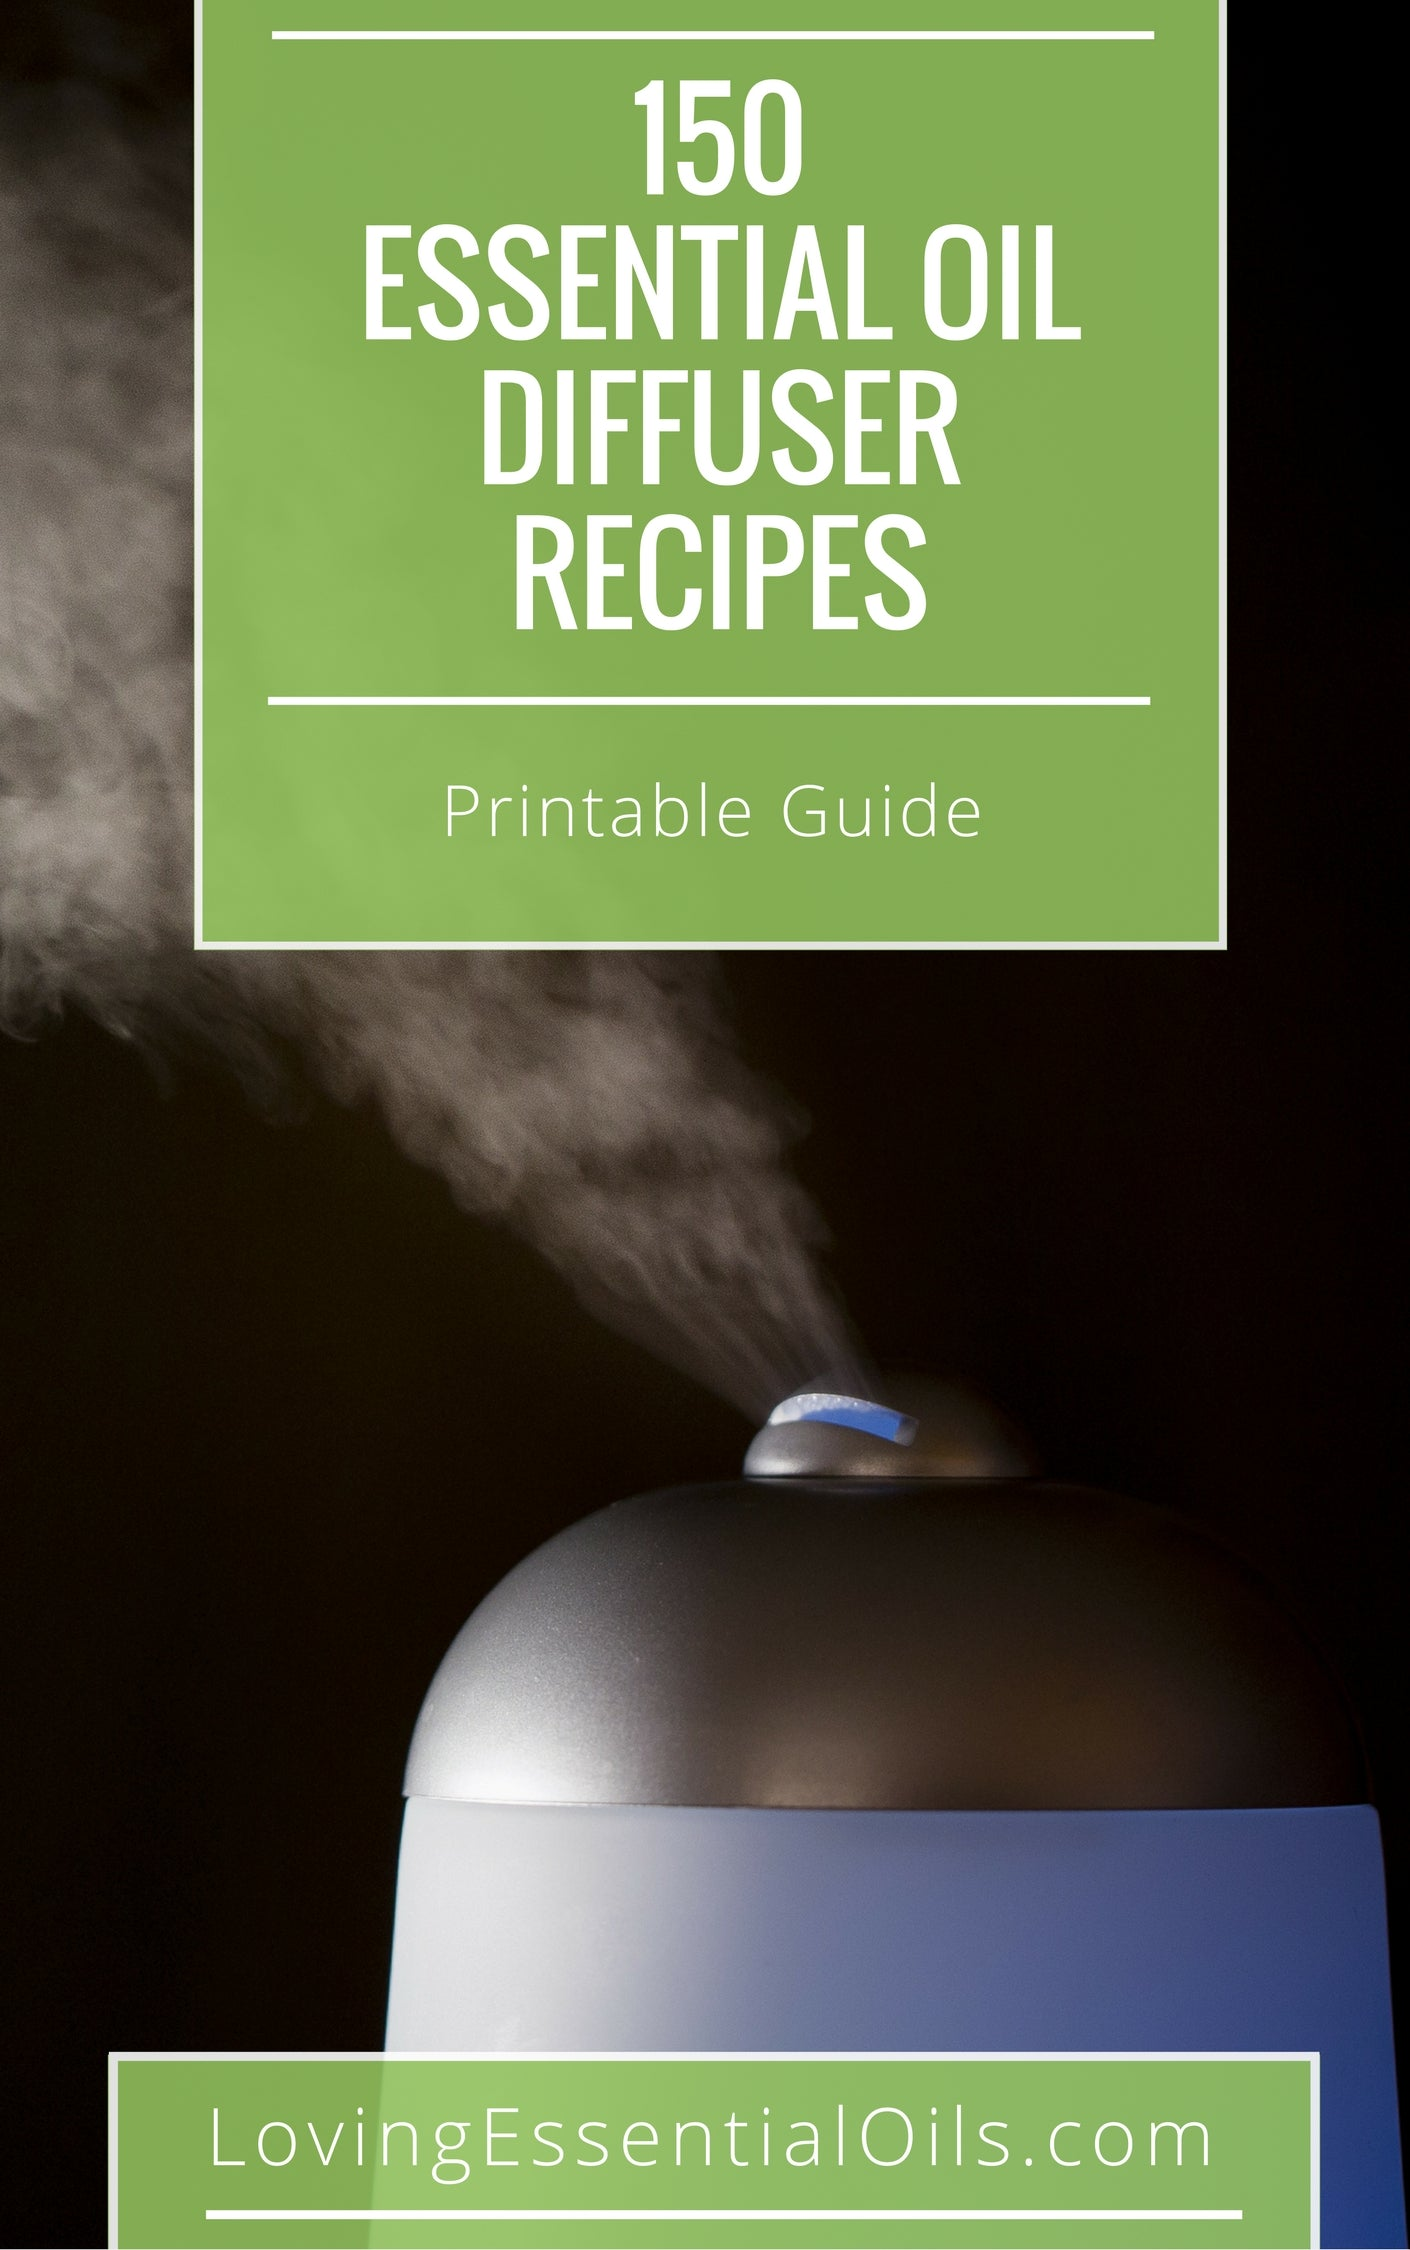 FREE GUIDE: 150 Essential Oil Diffuser Recipes You Will Love